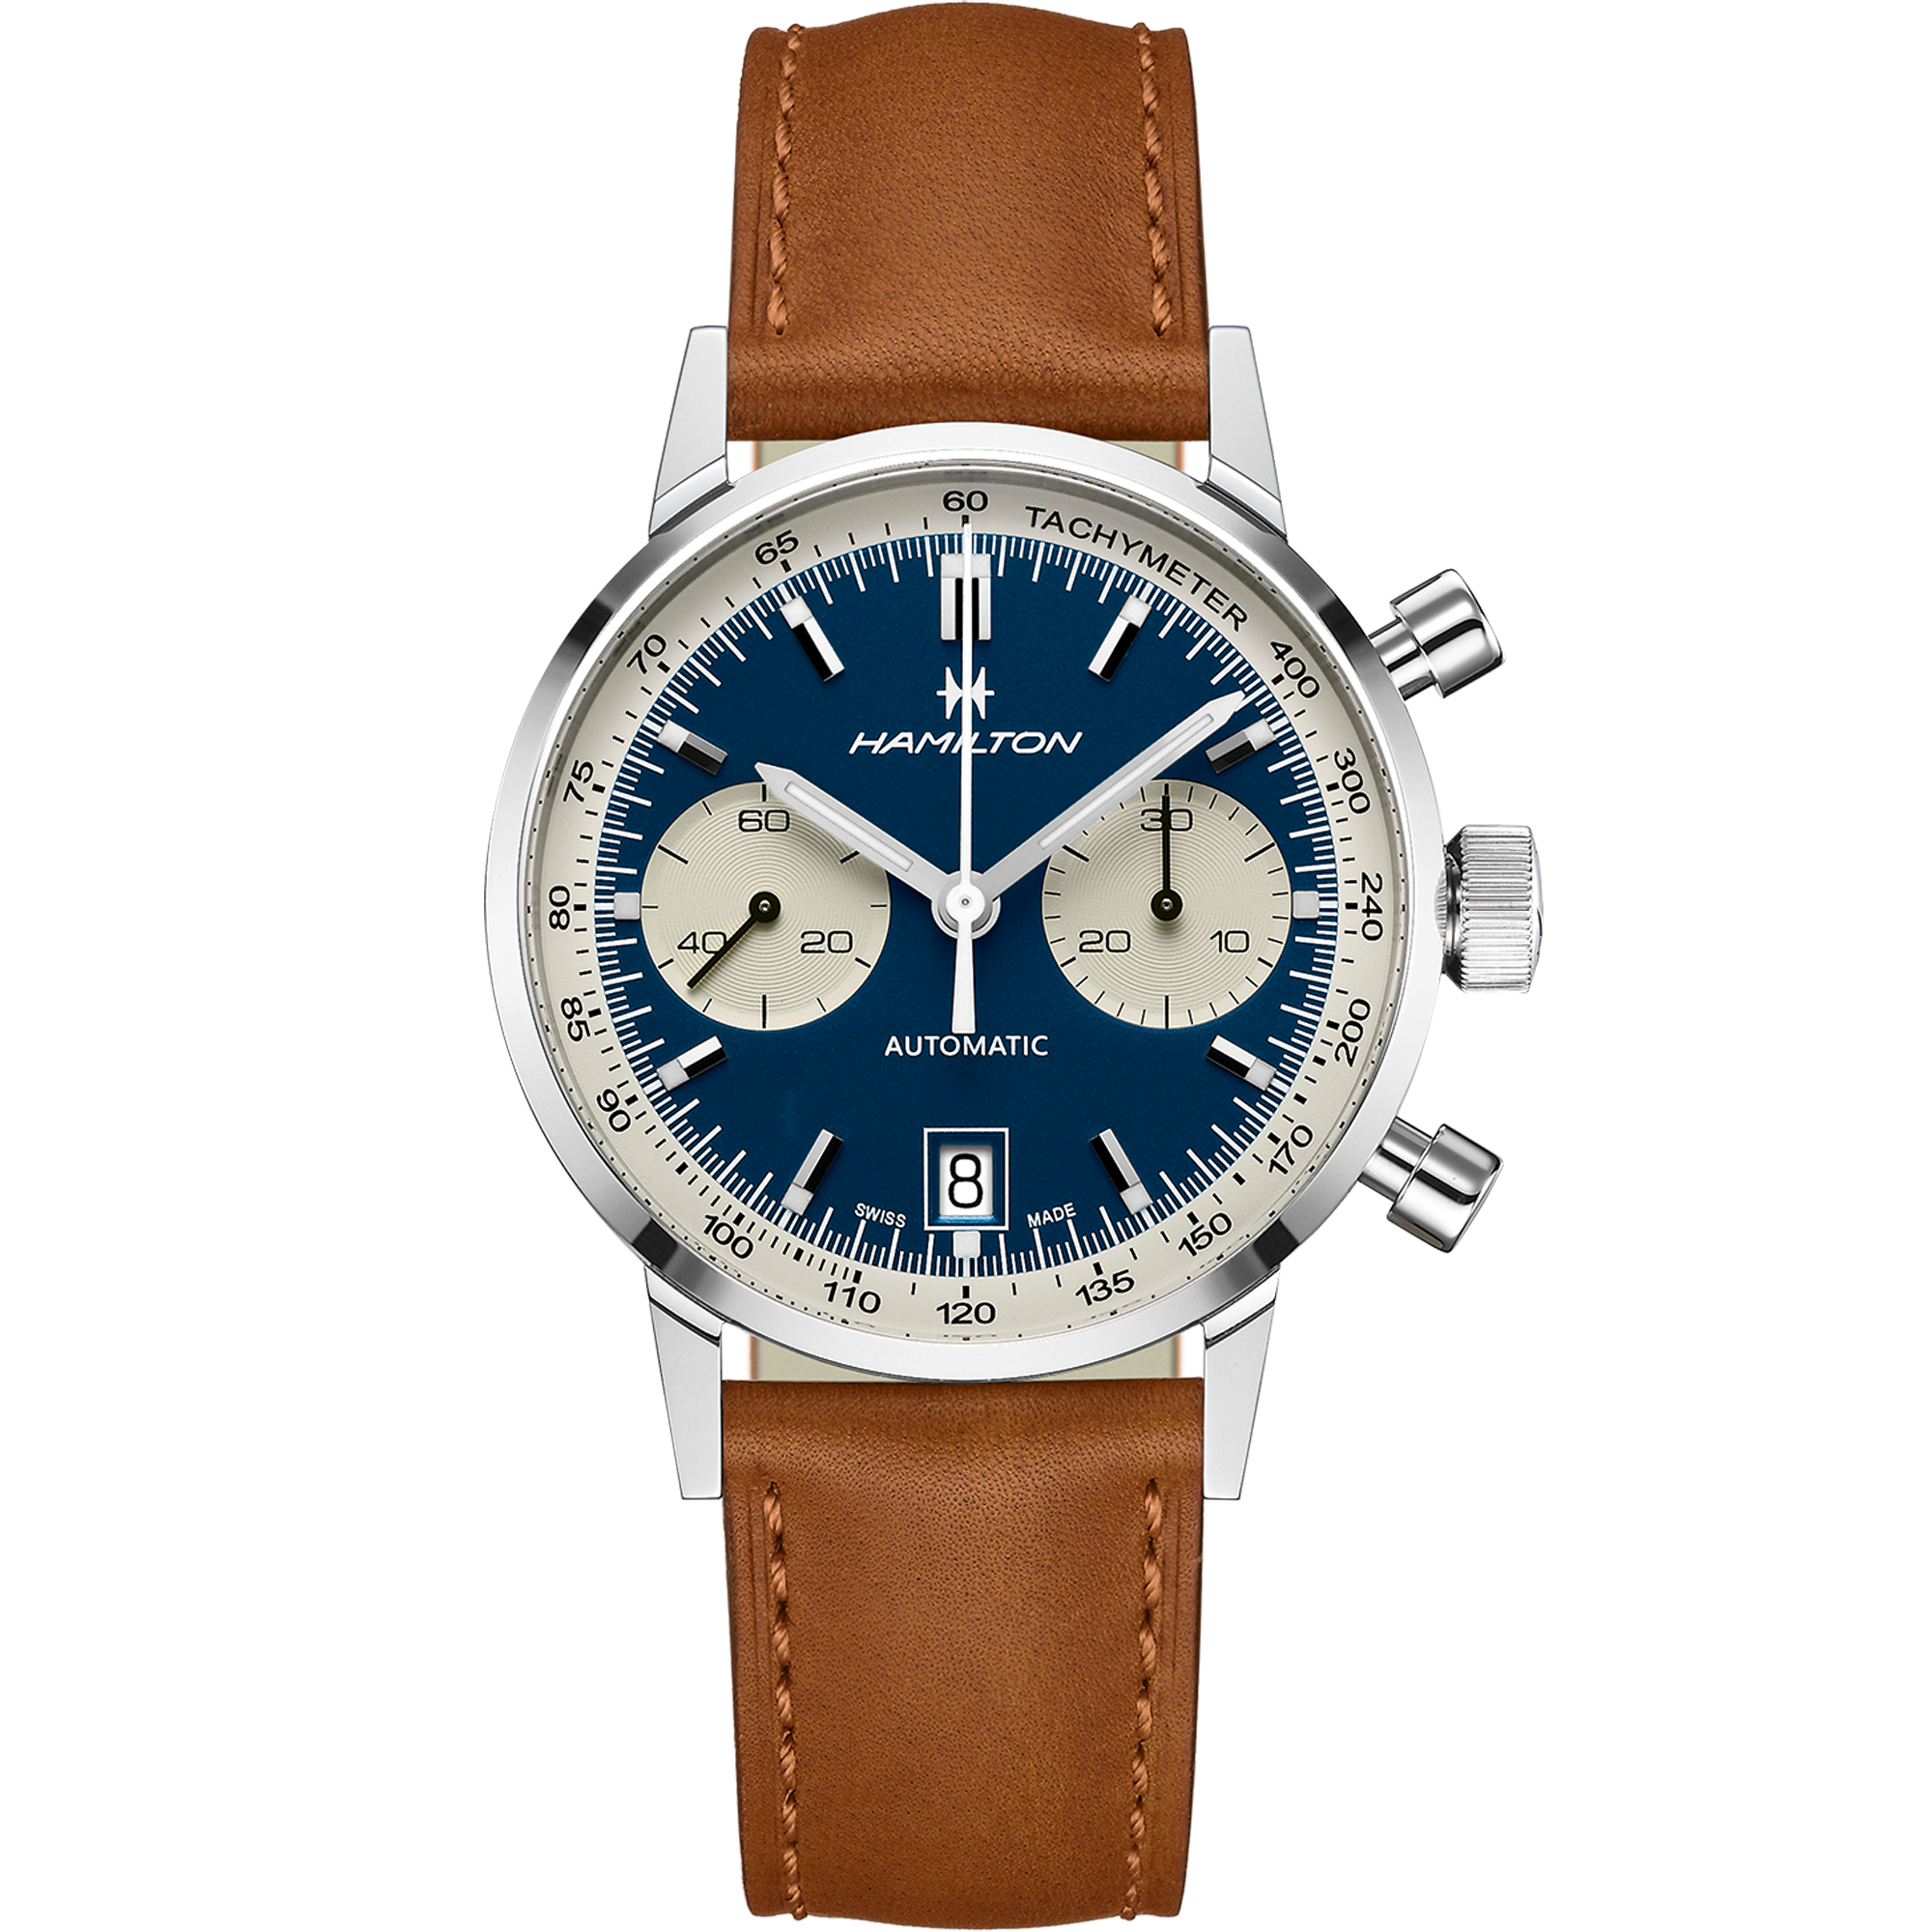 Intra Matic Auto Chrono Blue Dial Hamilton Watch H38416541 Hamilton Watch